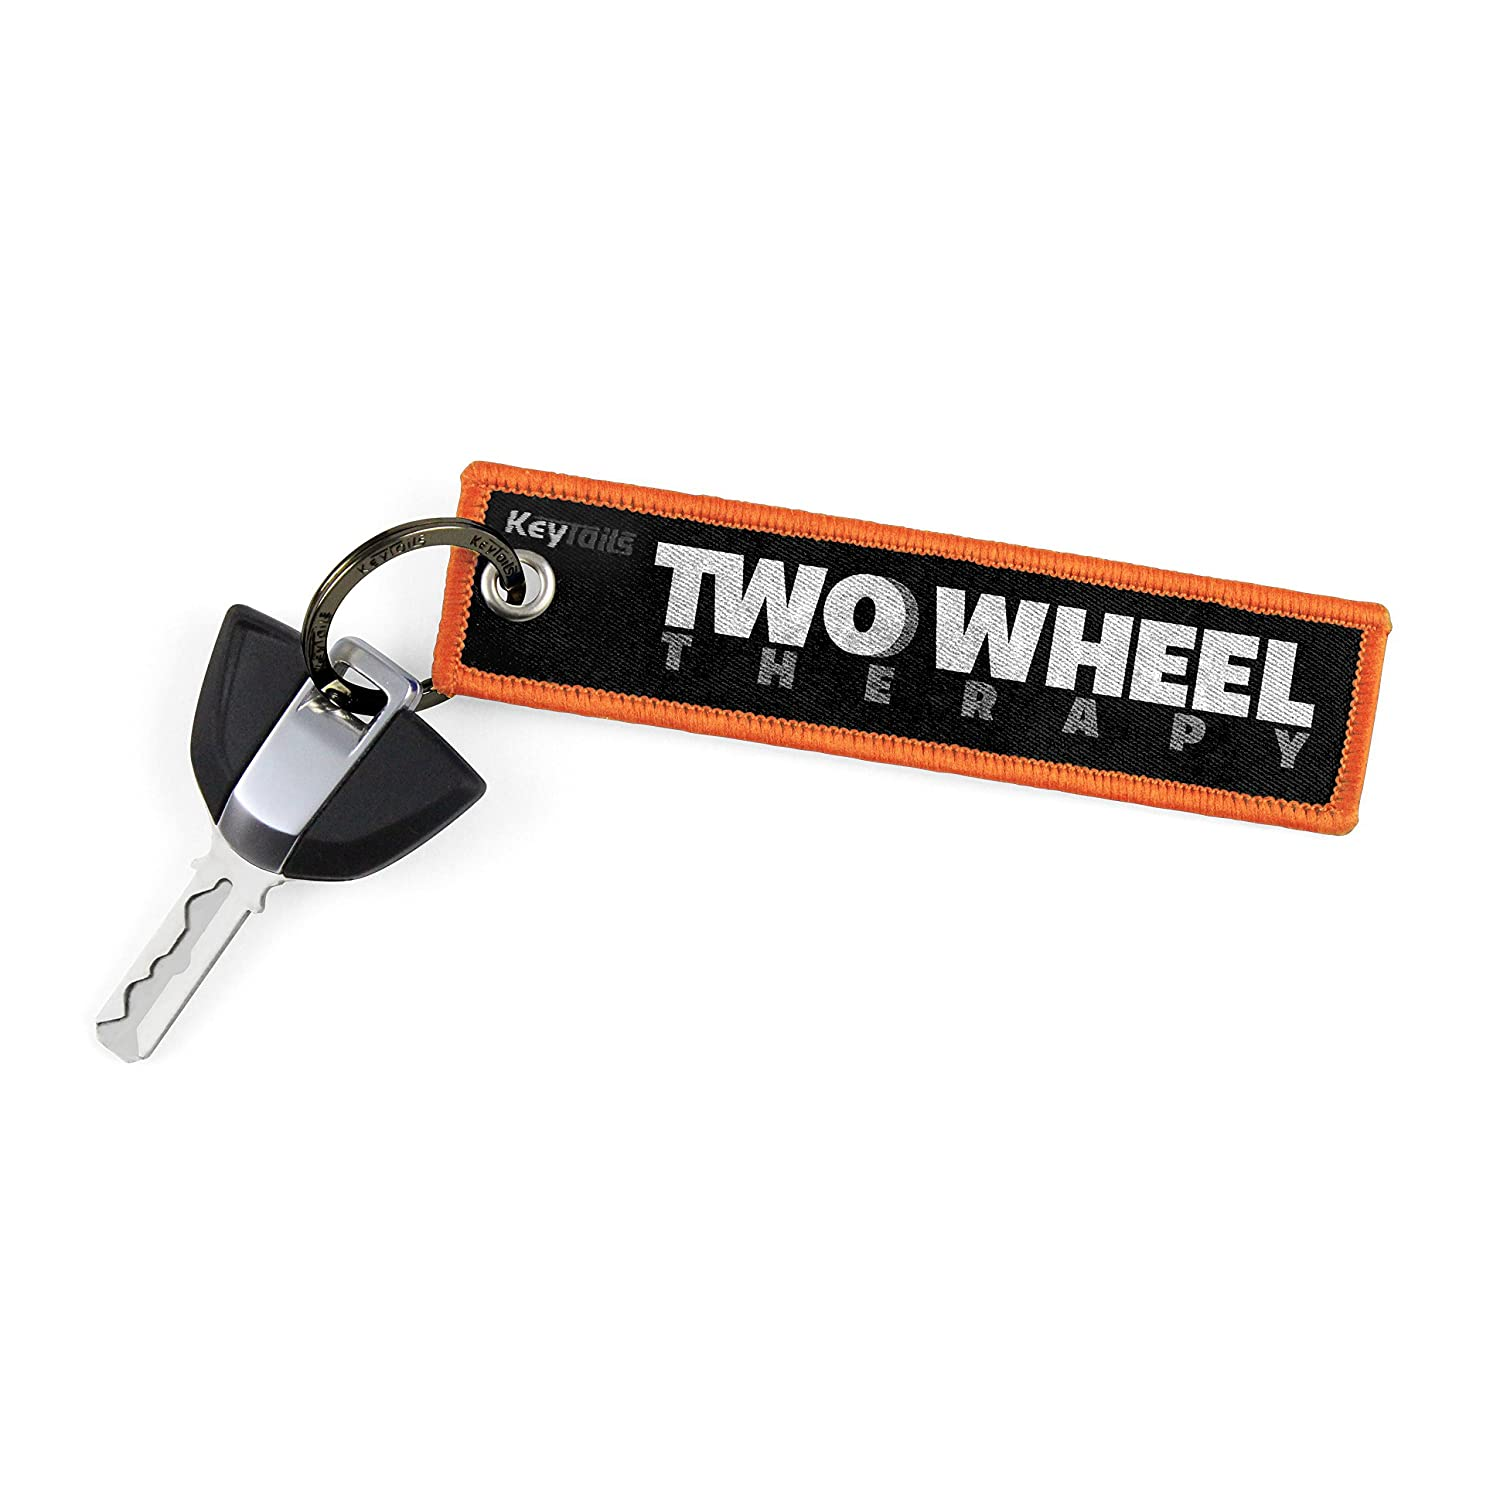 ATV Scooter Two Wheel Therapy KEYTAILS Keychains Key Tails UTV Premium Quality Key Tag for Motorcycle